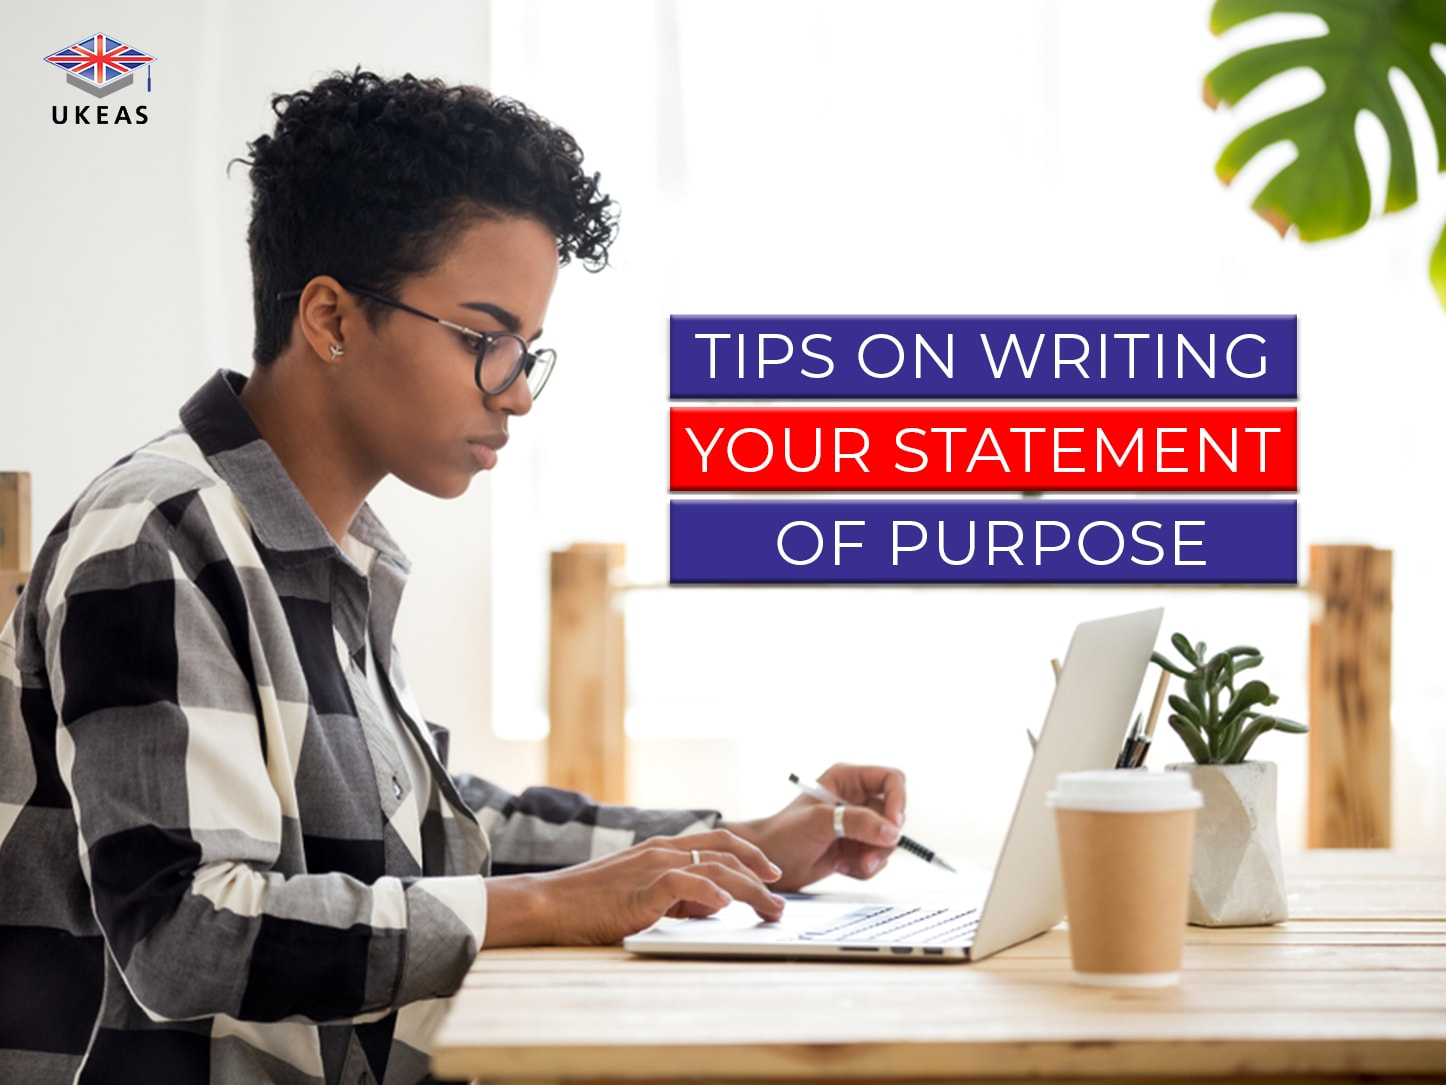 Tips on writing your statement of purpose + Free template